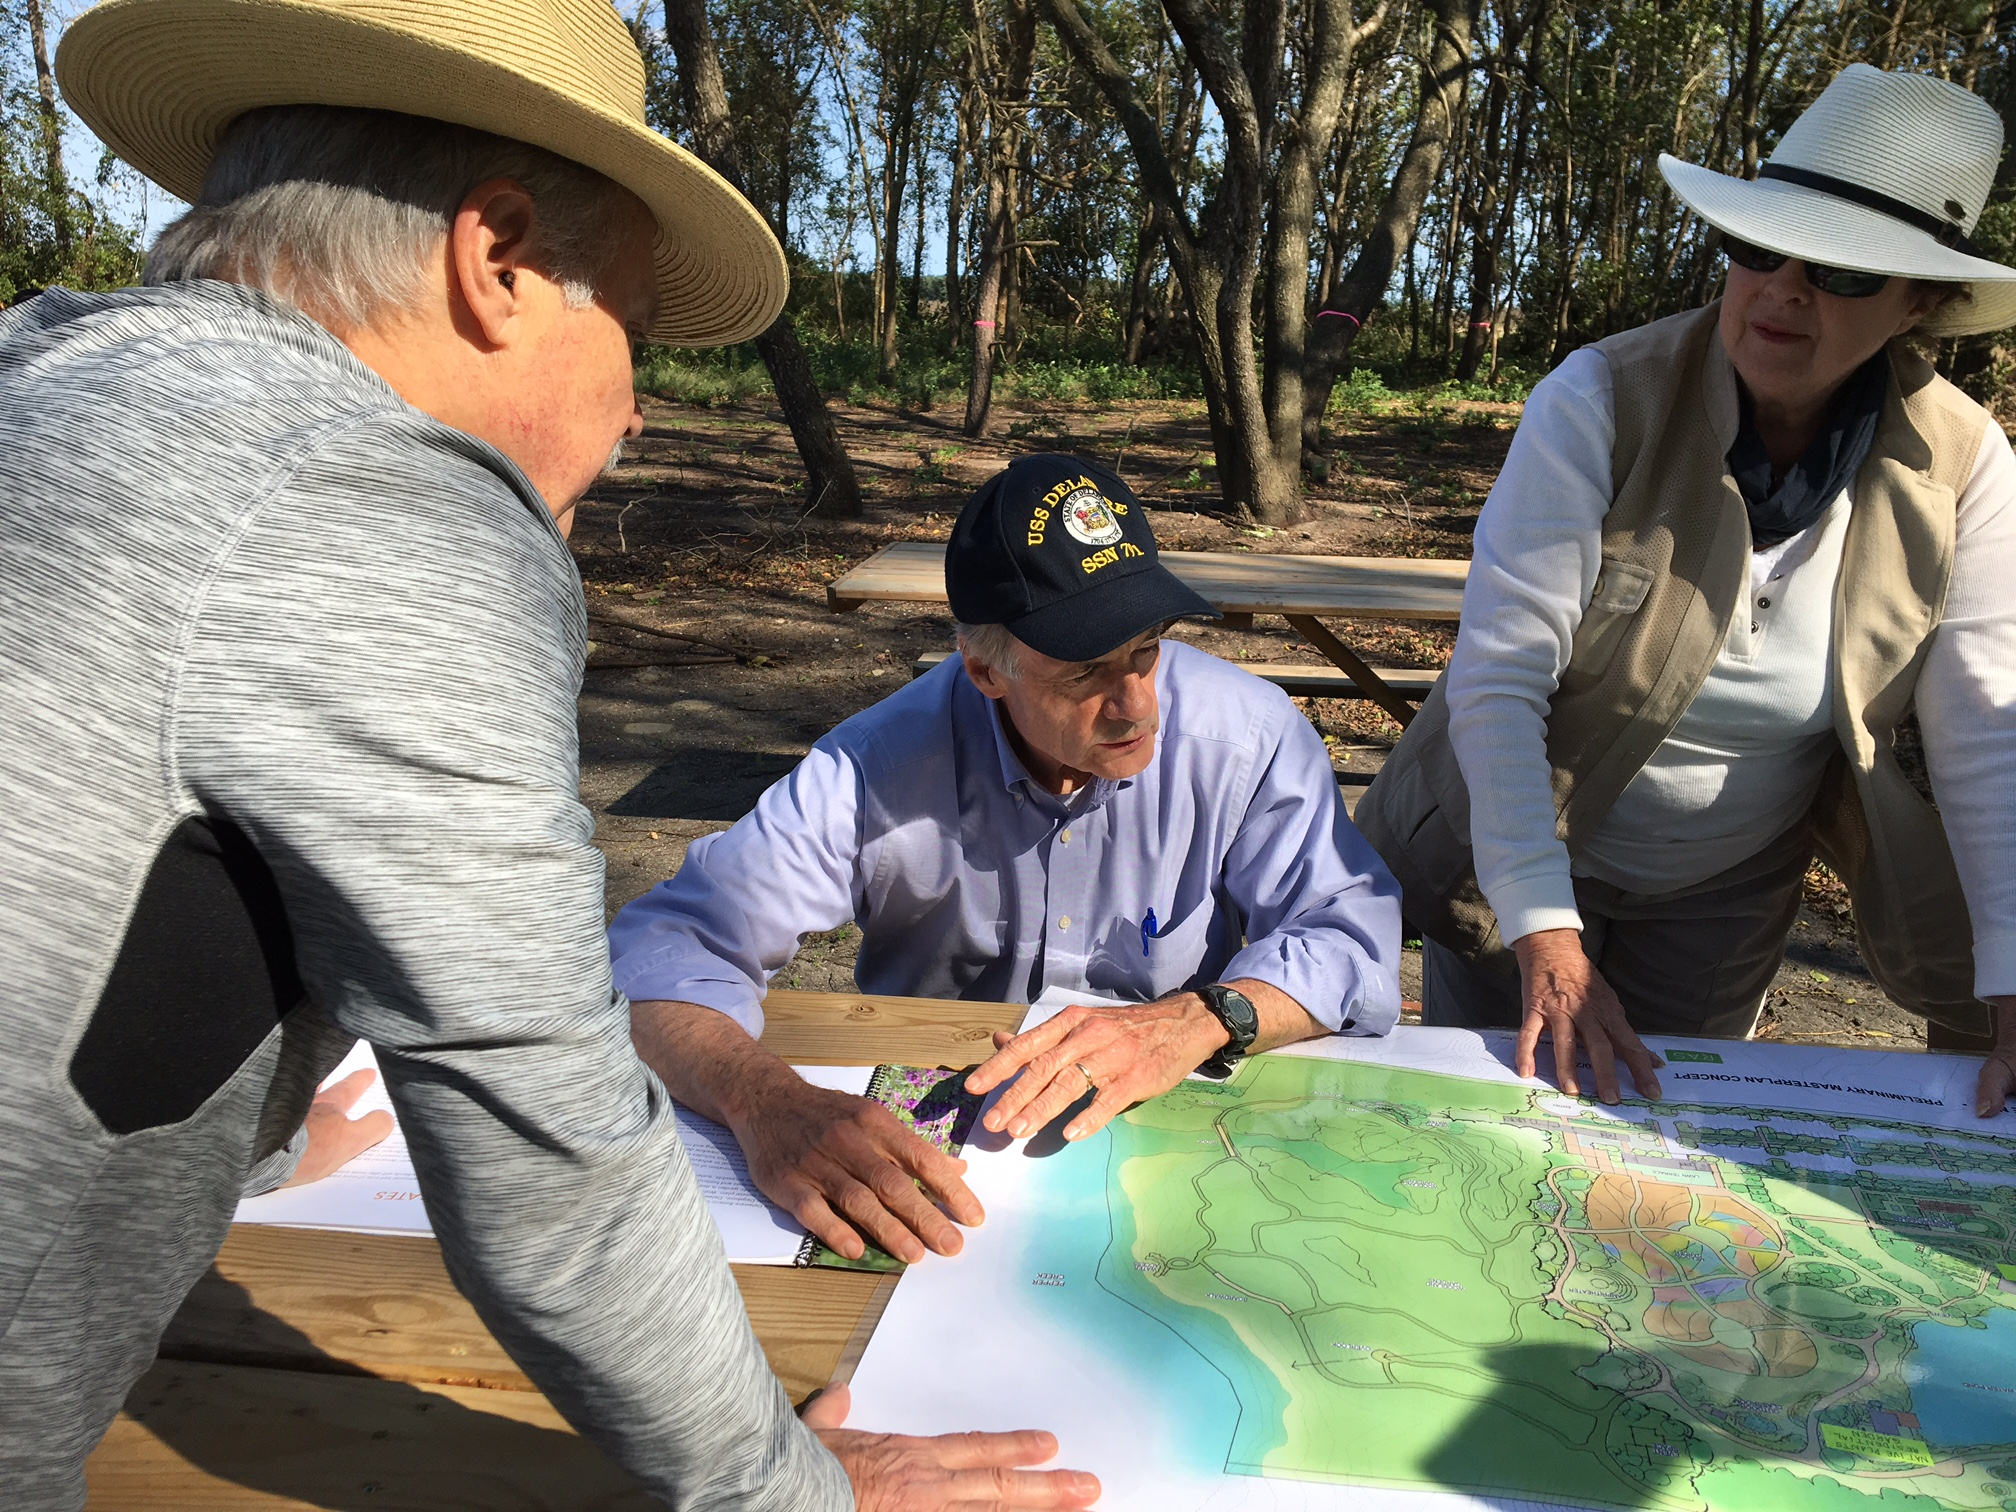 U.S. Senator Tom Carper of Delaware came out to the garden site on October 24. He stopped near the Woodland Gardens to view the site plan with Vice President Ray Sander and Executive Director Sheryl Swed, then followed the pathways down to Pepper Creek.